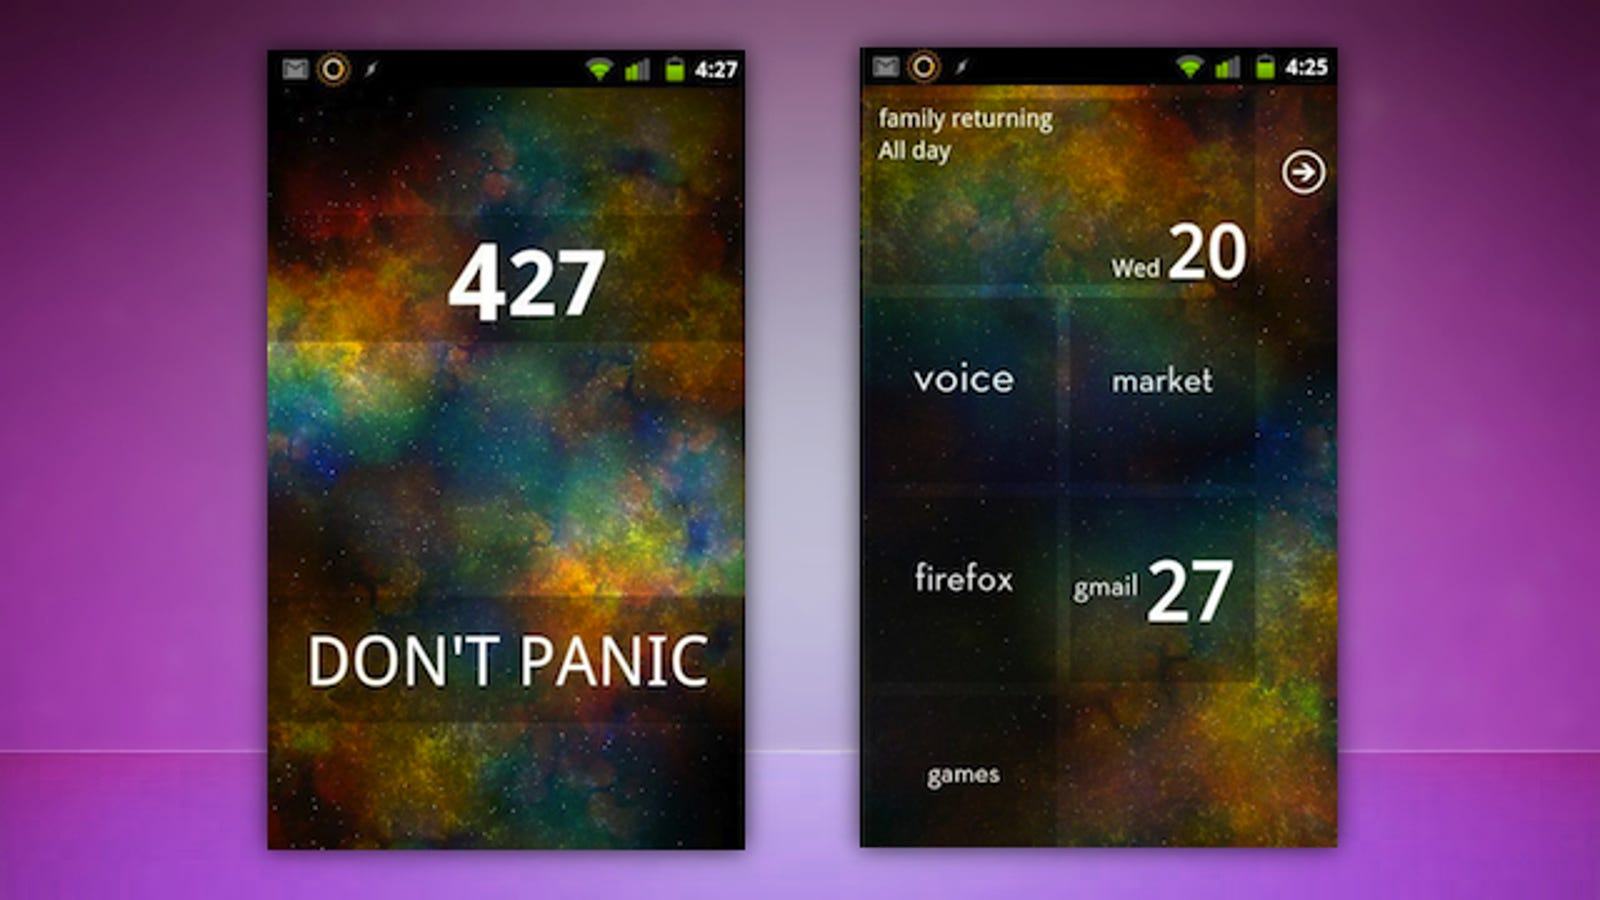 The Dont Panic Home Screen